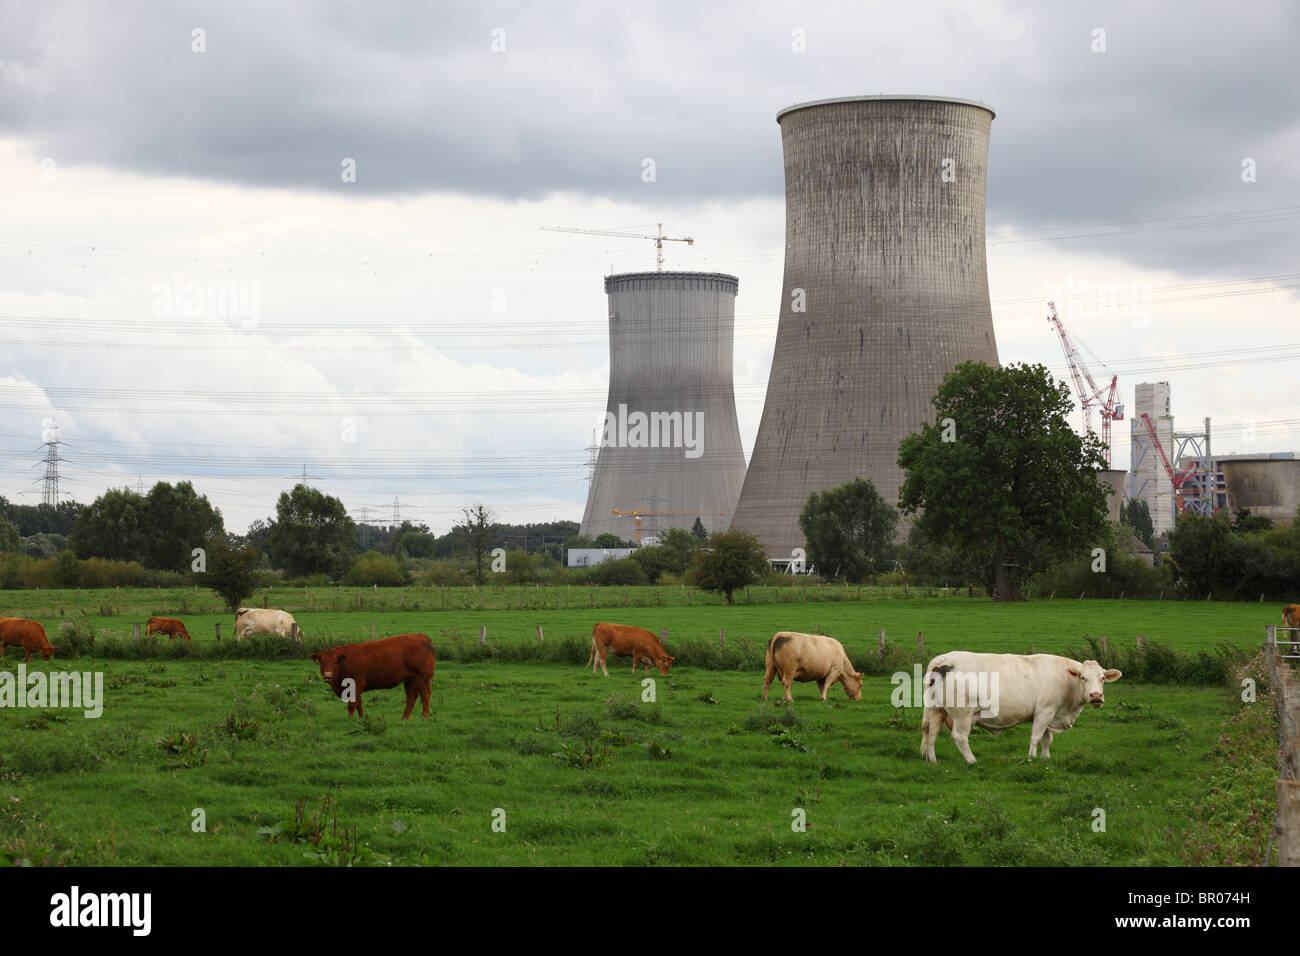 Cows on a meadow in front of nuclear power station Stock Photo